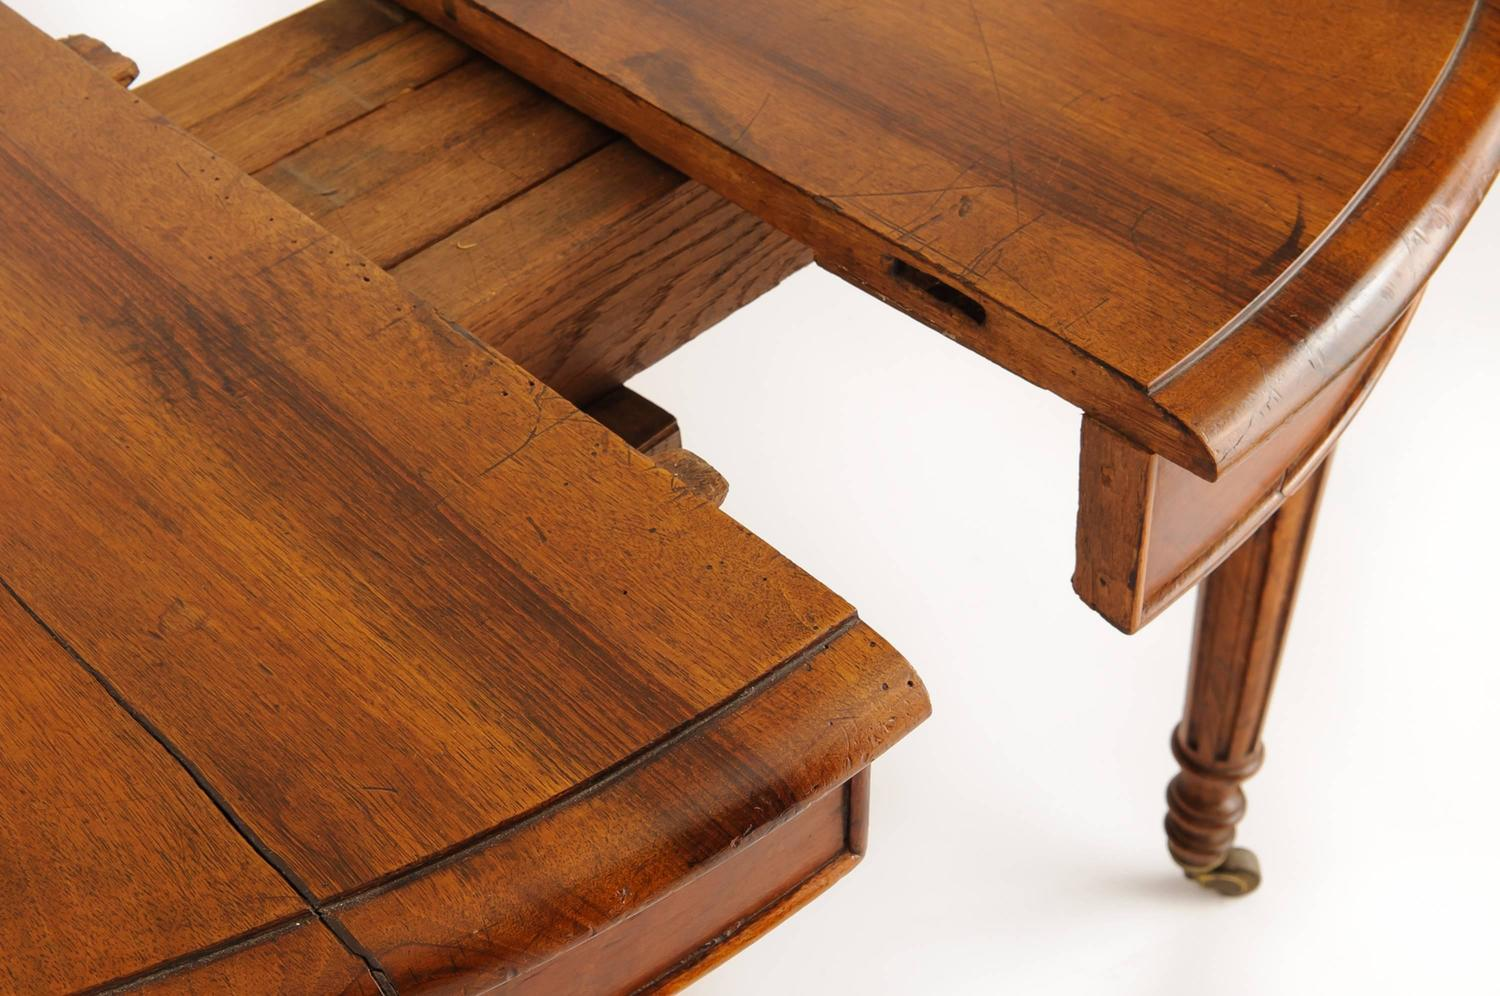 19th century french round walnut dining table with extensions for sale